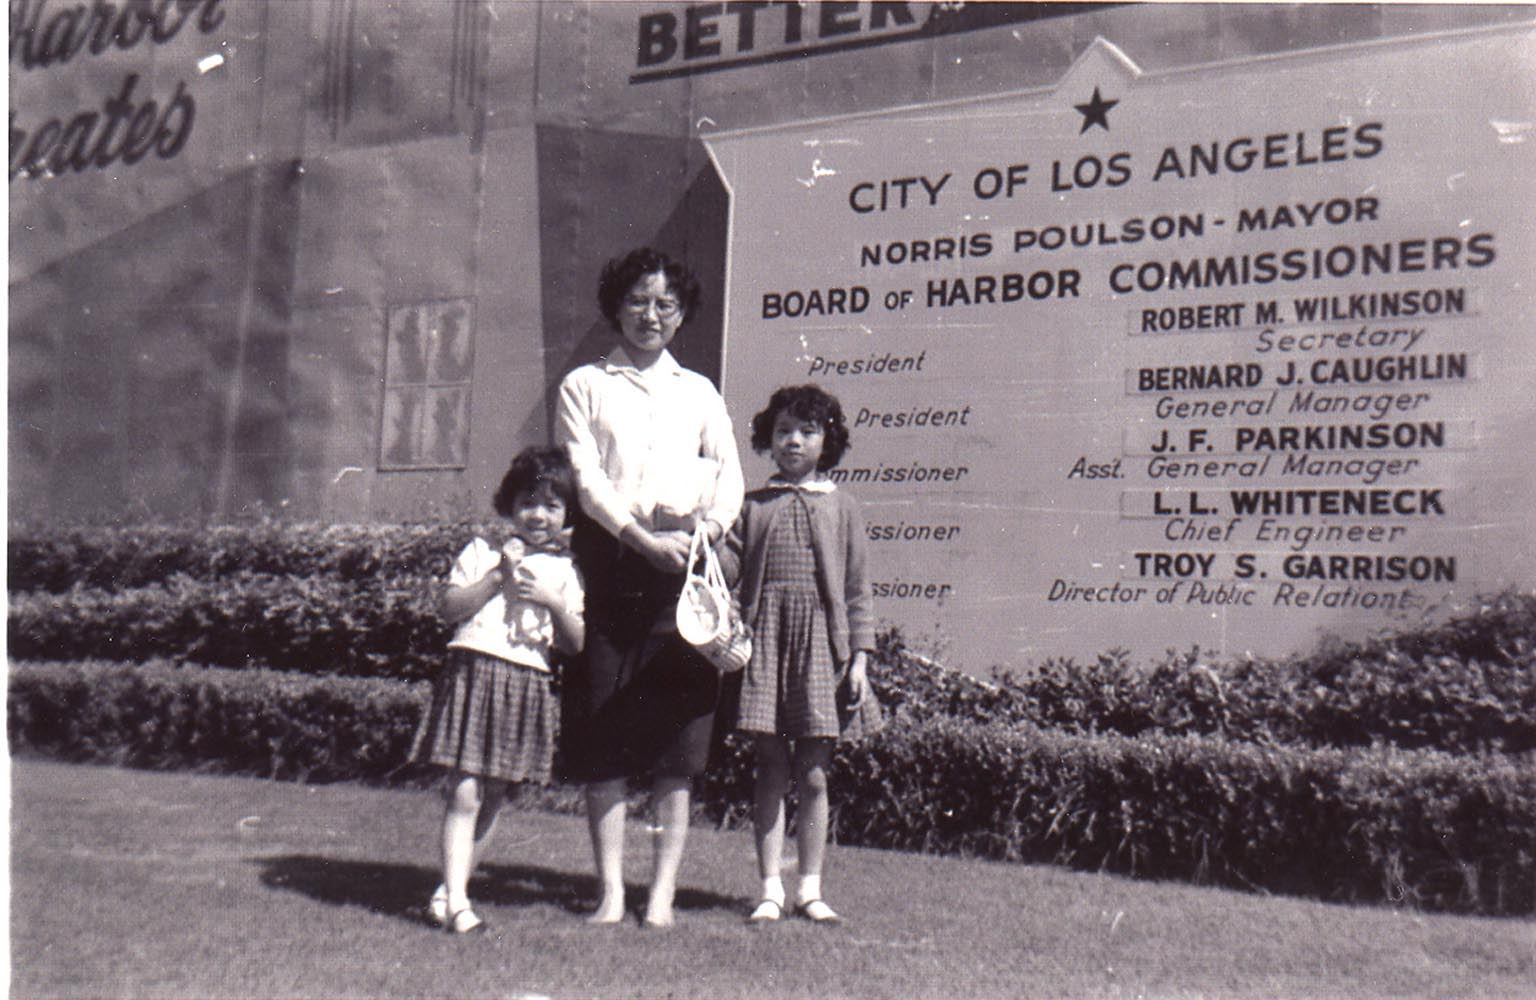 Mrs. Ruth Mulan Chu Chao and 2 daughters took their first steps on American soil when the ship made a brief stop at Los Angeles before continuing through the Panama Canal to New York City.